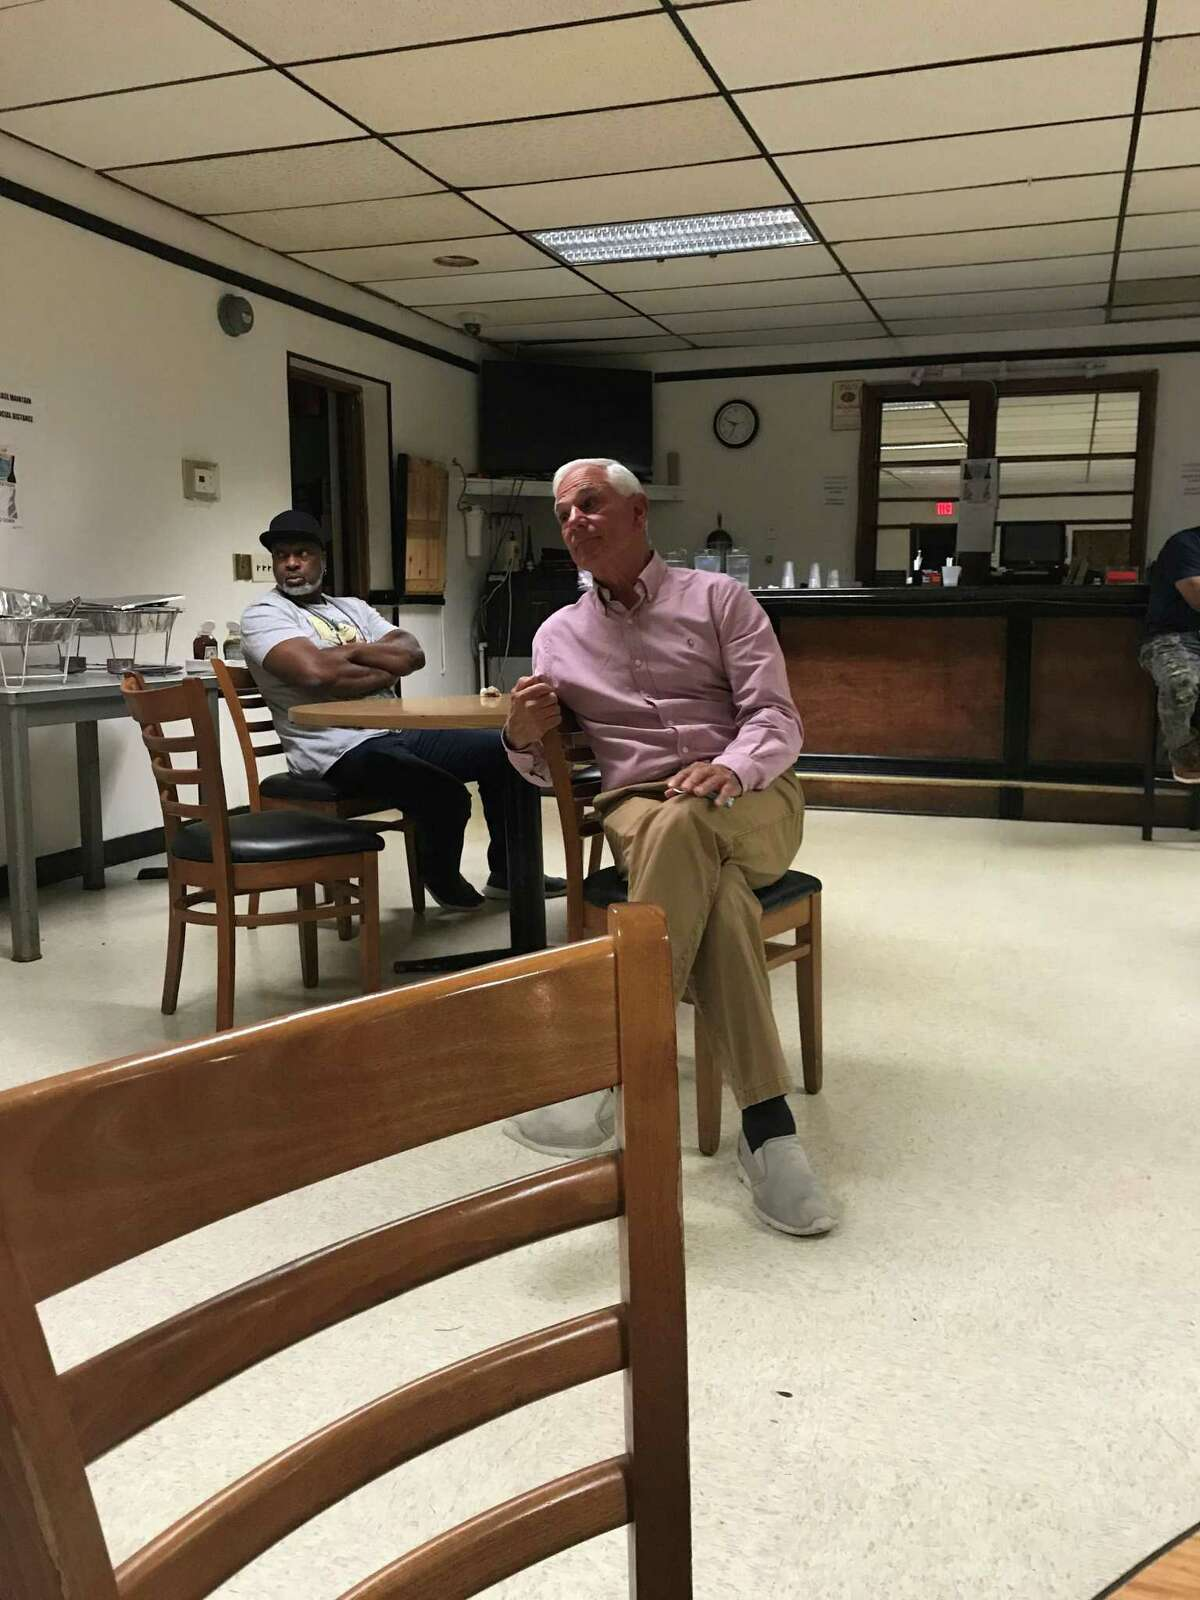 Unaffiliated mayoral candidate Bobby Valentine speaks with residents at the Shining Star Lodge No. 303 in Stamford, Conn., on Monday, Oct. 4, 2021.